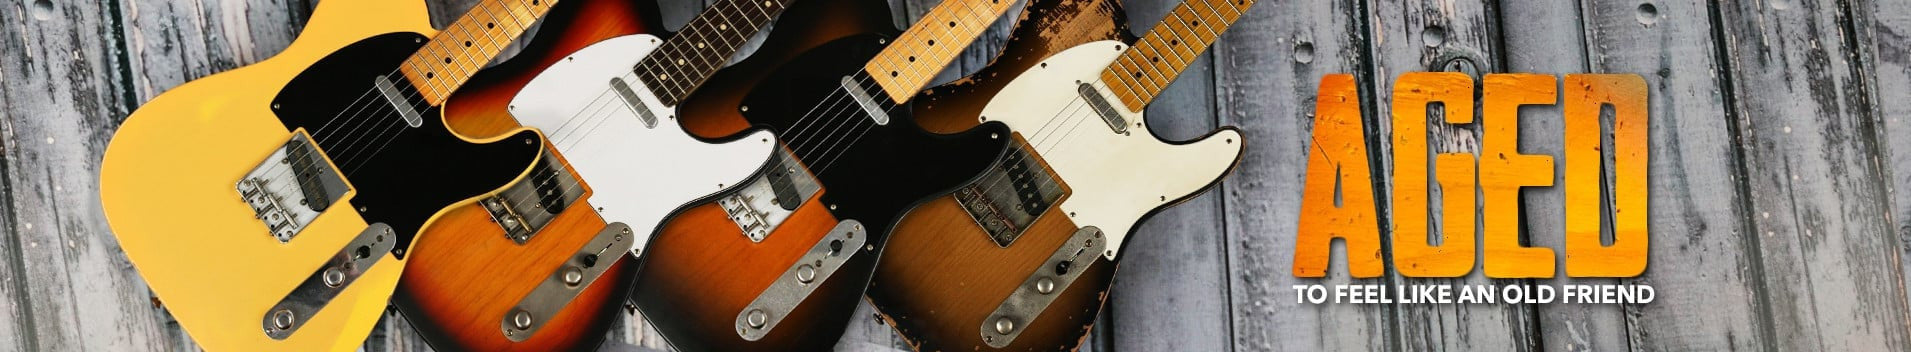 Replay Aged Guitars